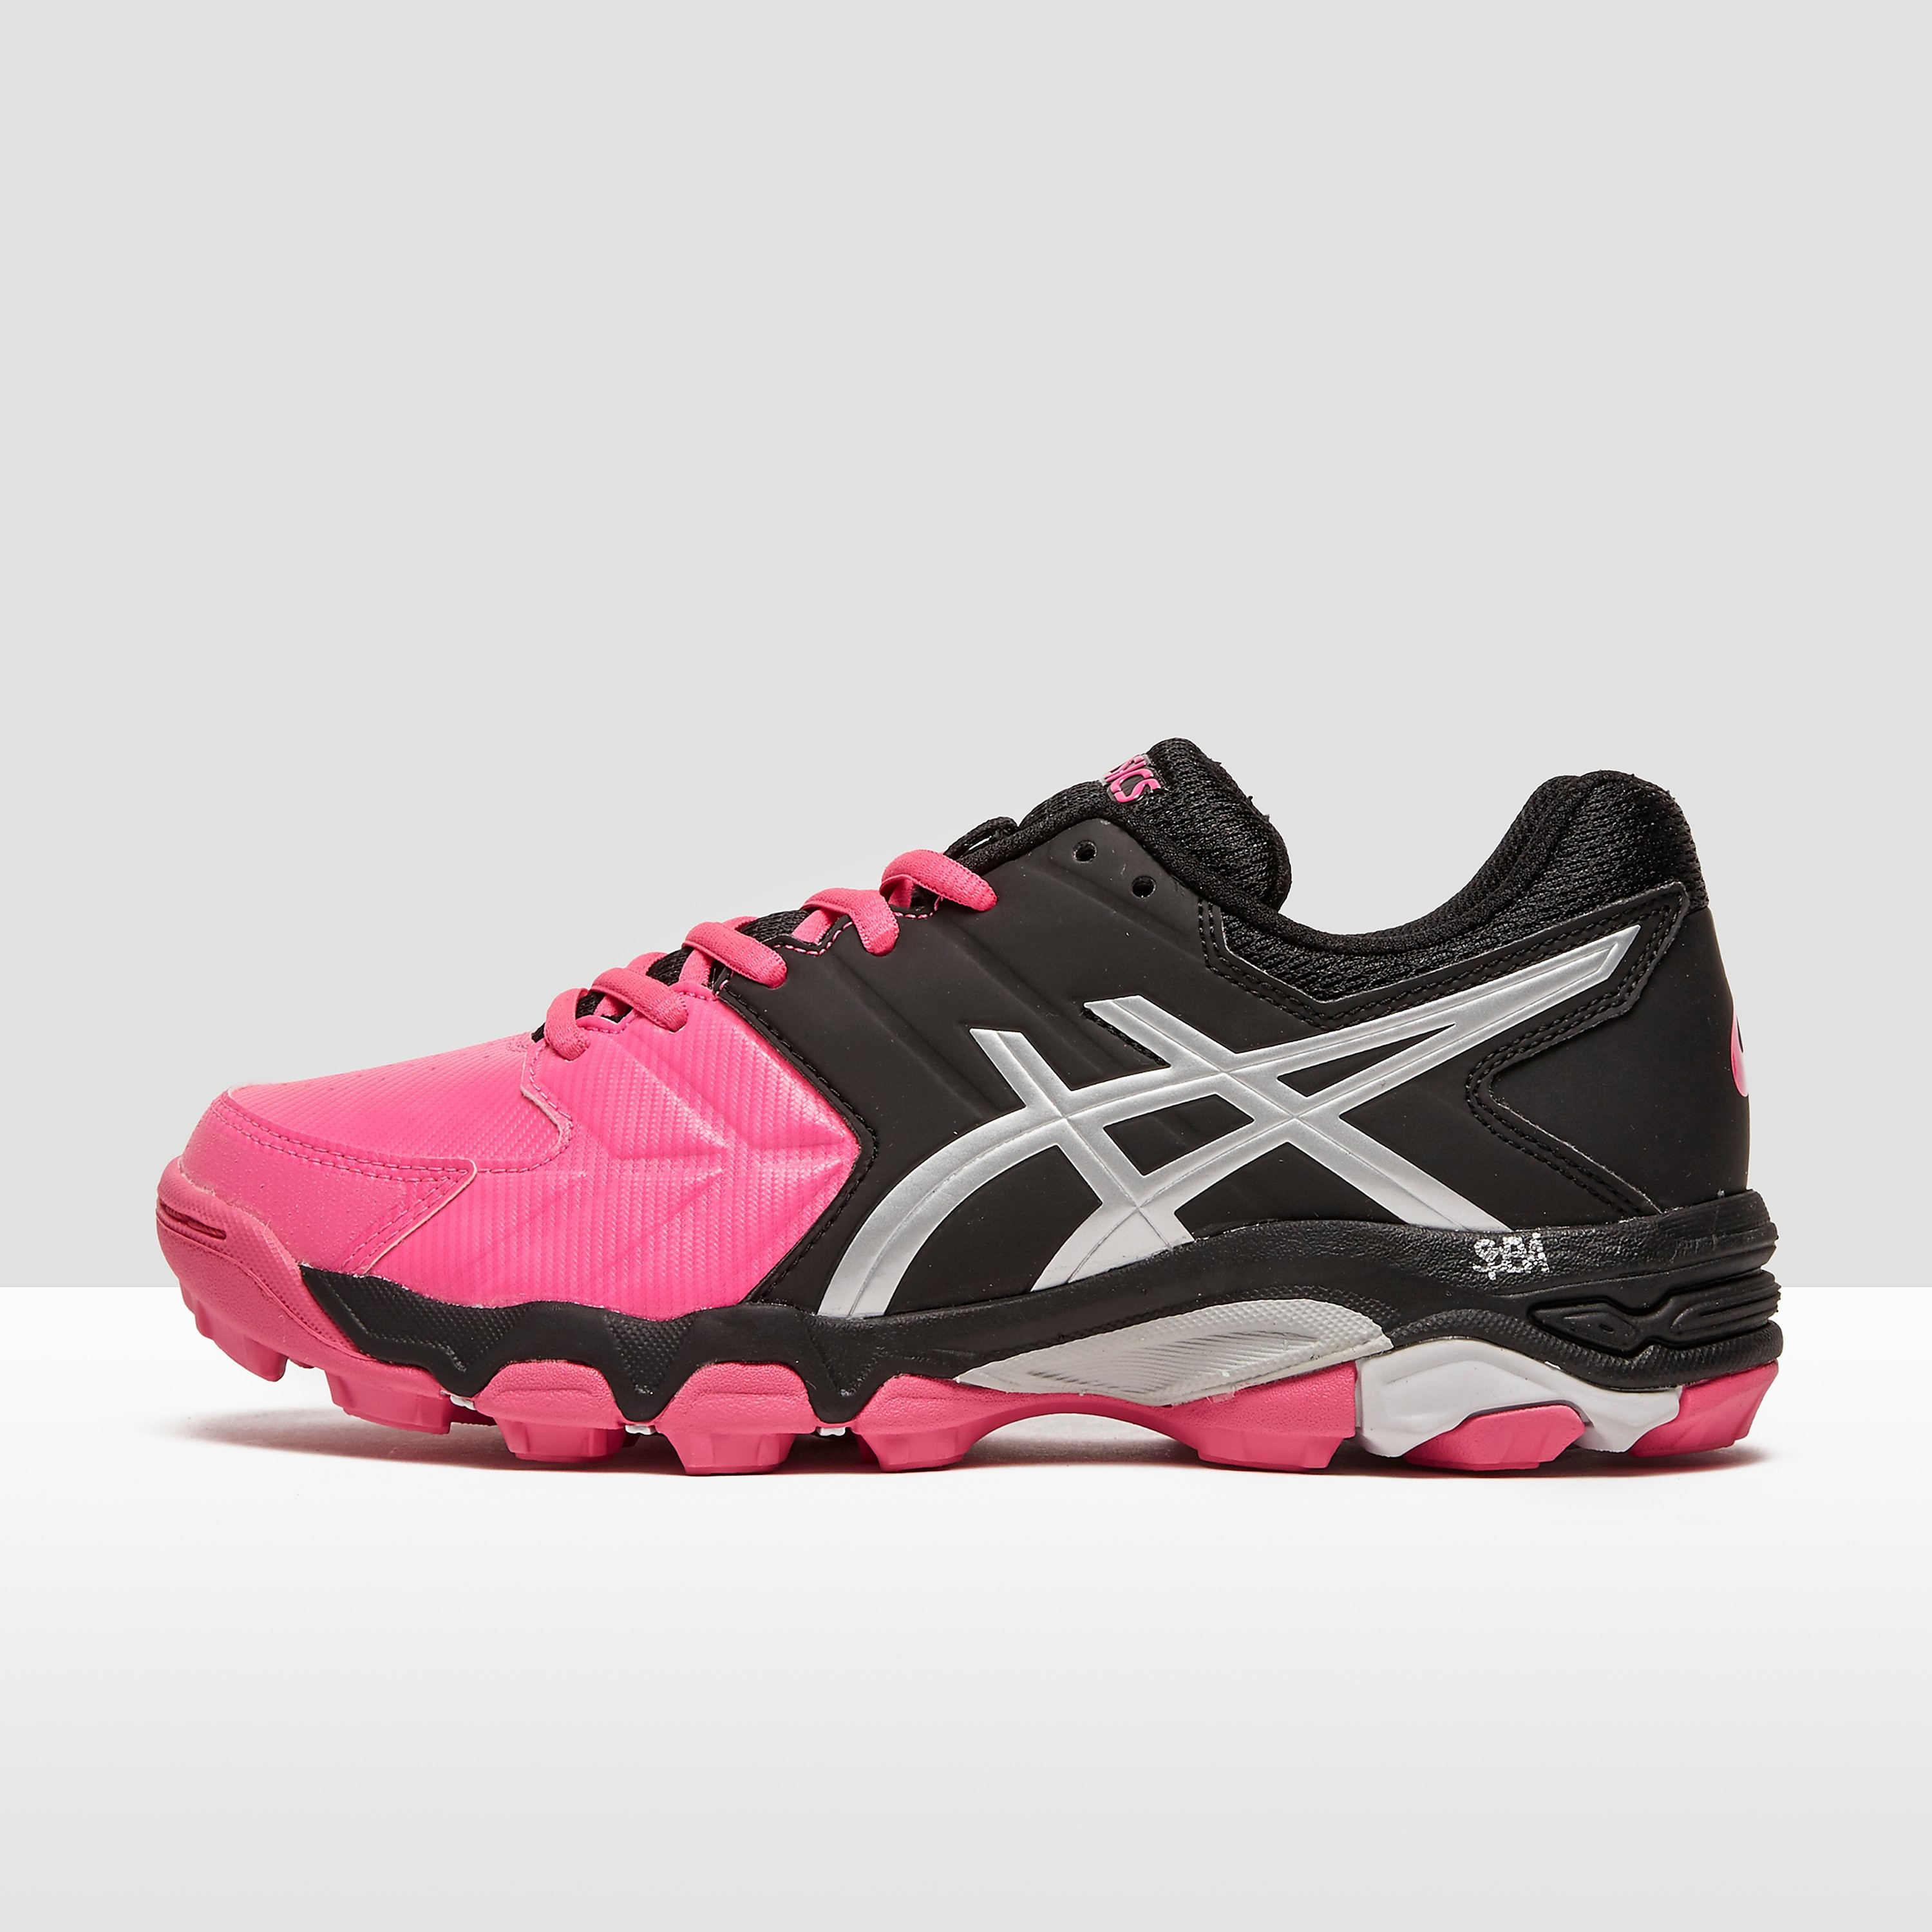 Asics Gel Blackheath Women's Hockey Shoes